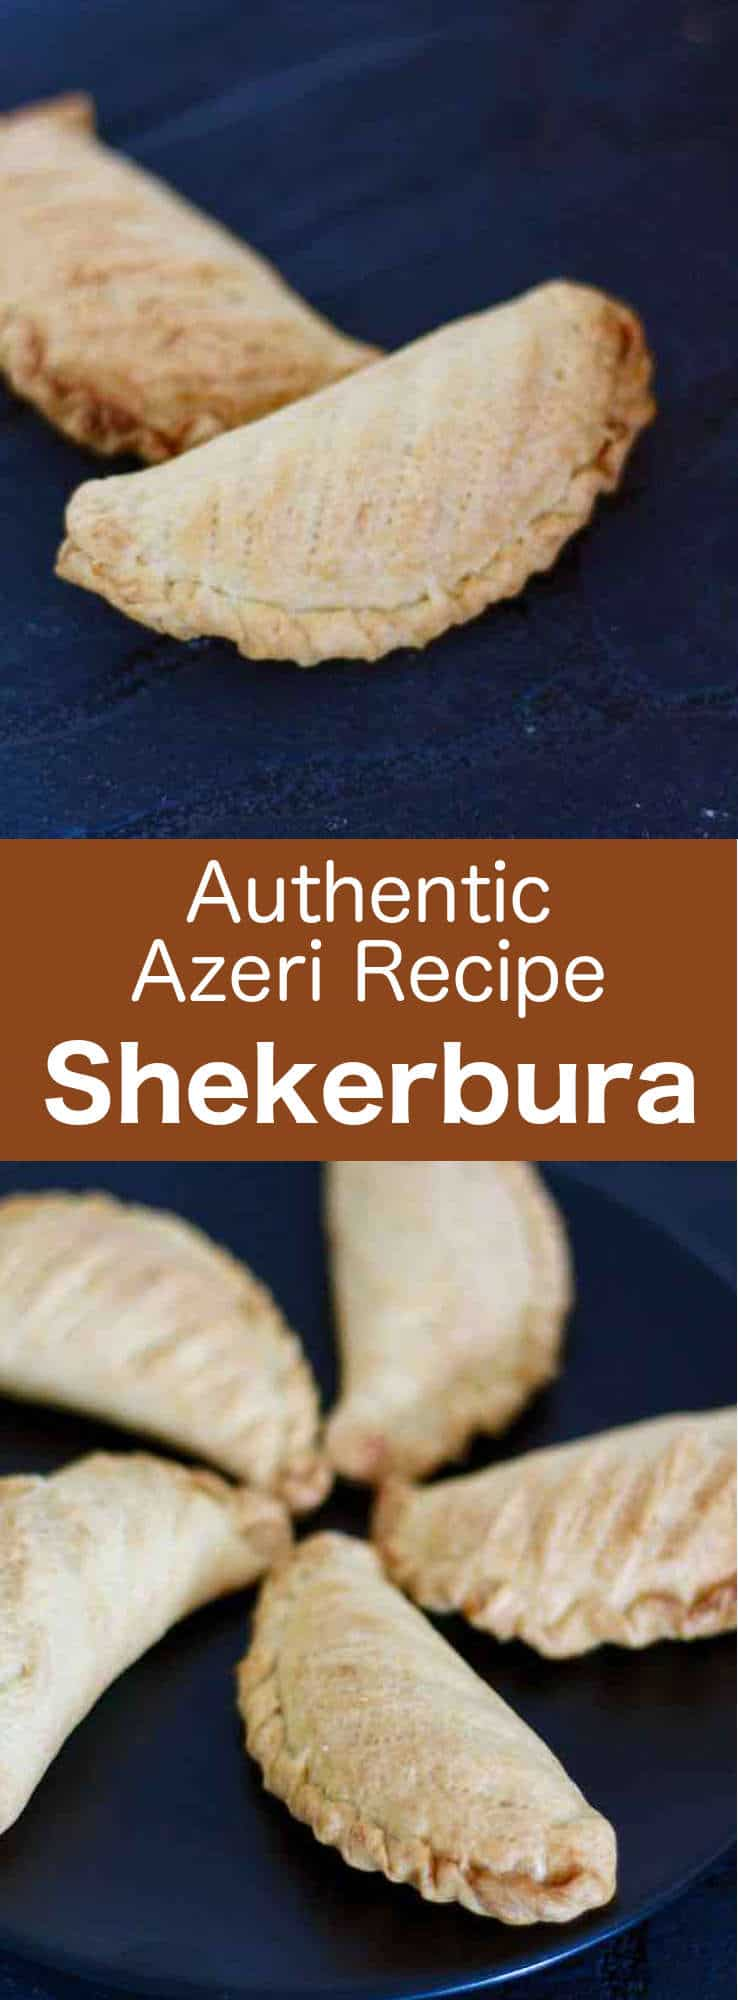 Shekerbura are delicious traditional pastries from Azerbaijan that are prepared with with an almond and cardamome filling. #Azerbaijan #Iran #Nowruz #pastry #worldcuisine #196flavors